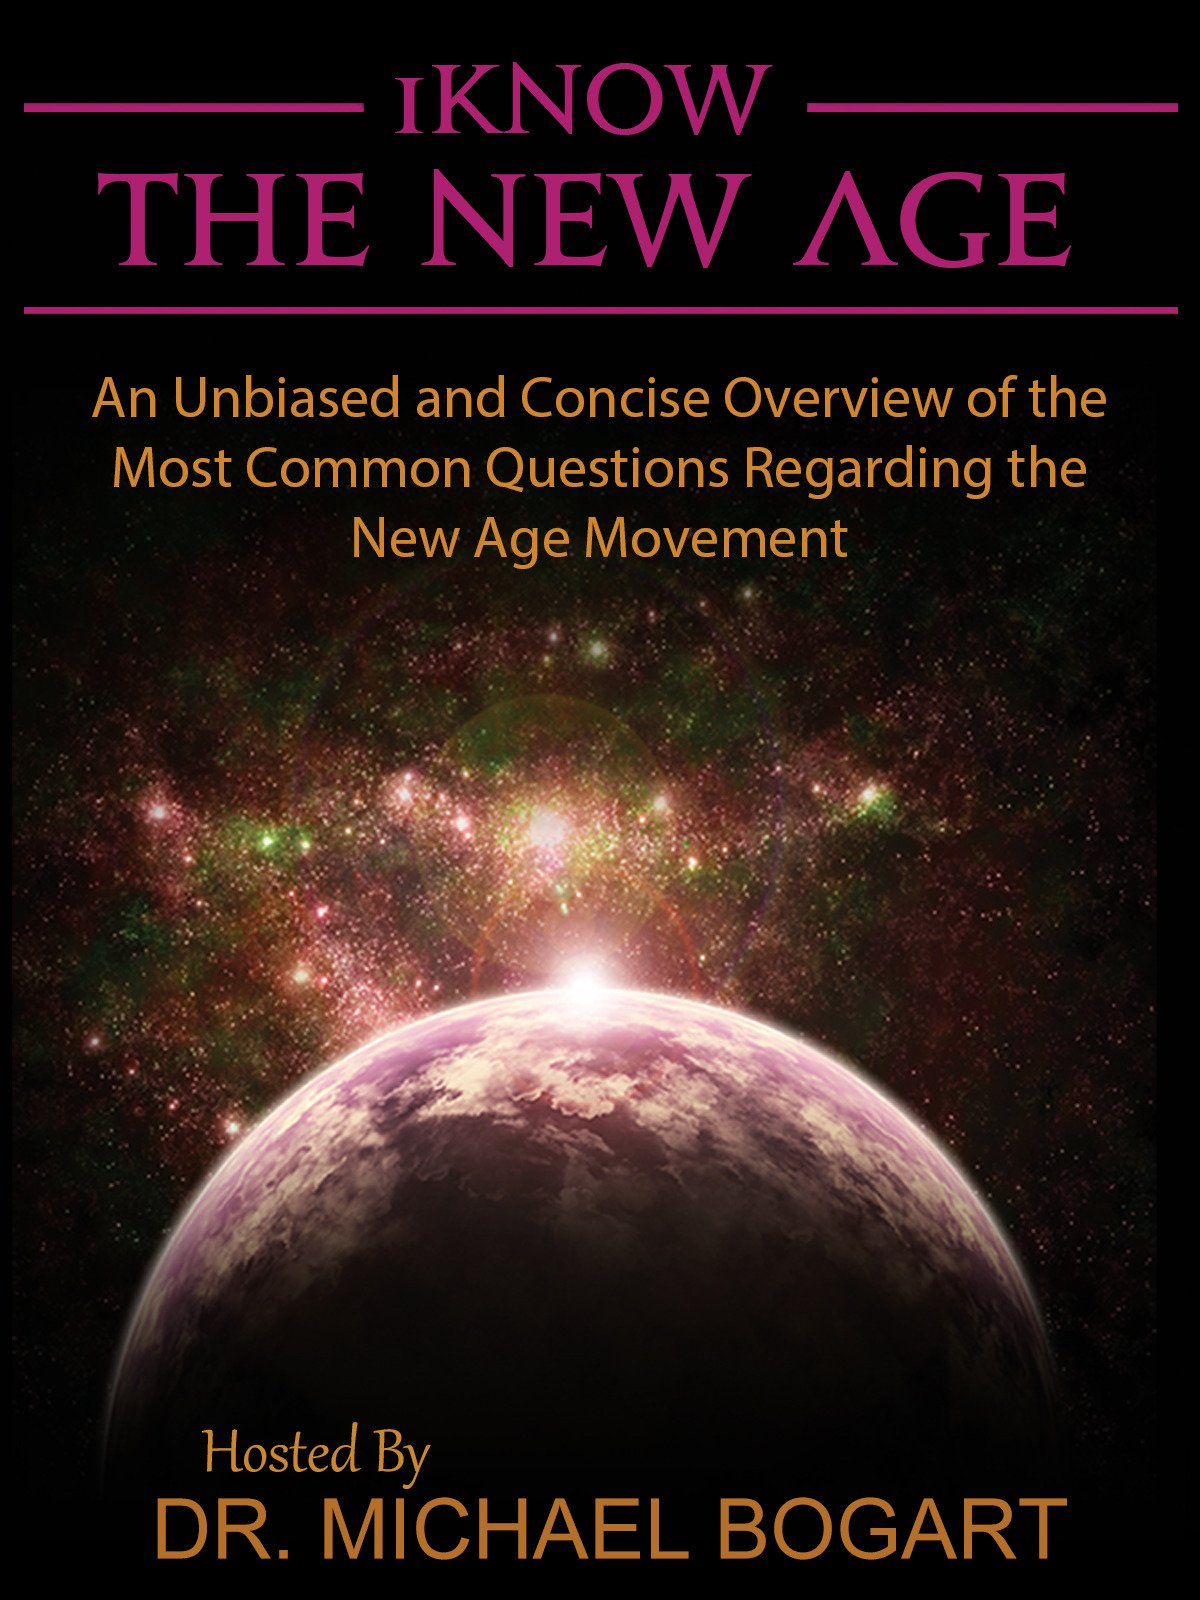 iKnow the New Age